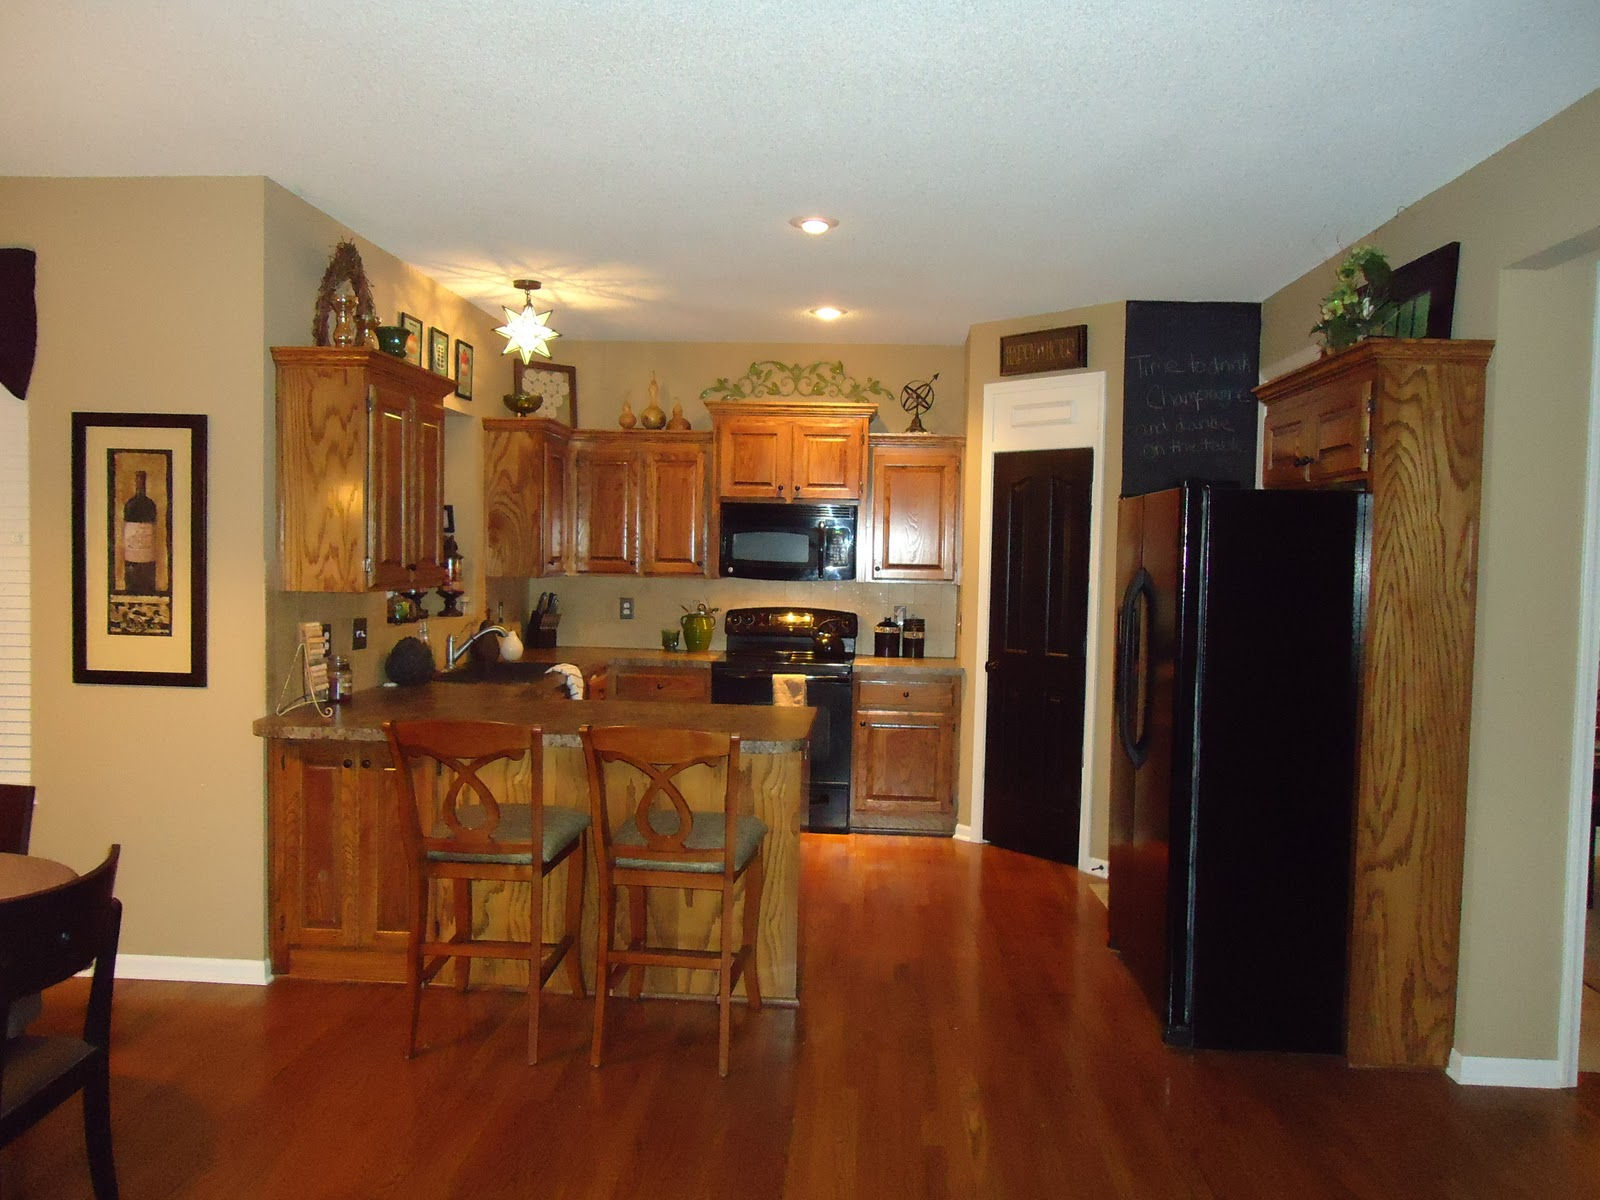 How To Decorate Your Kitchen Glamorous Of How to Decorate My Kitchen On a Budget Pictures